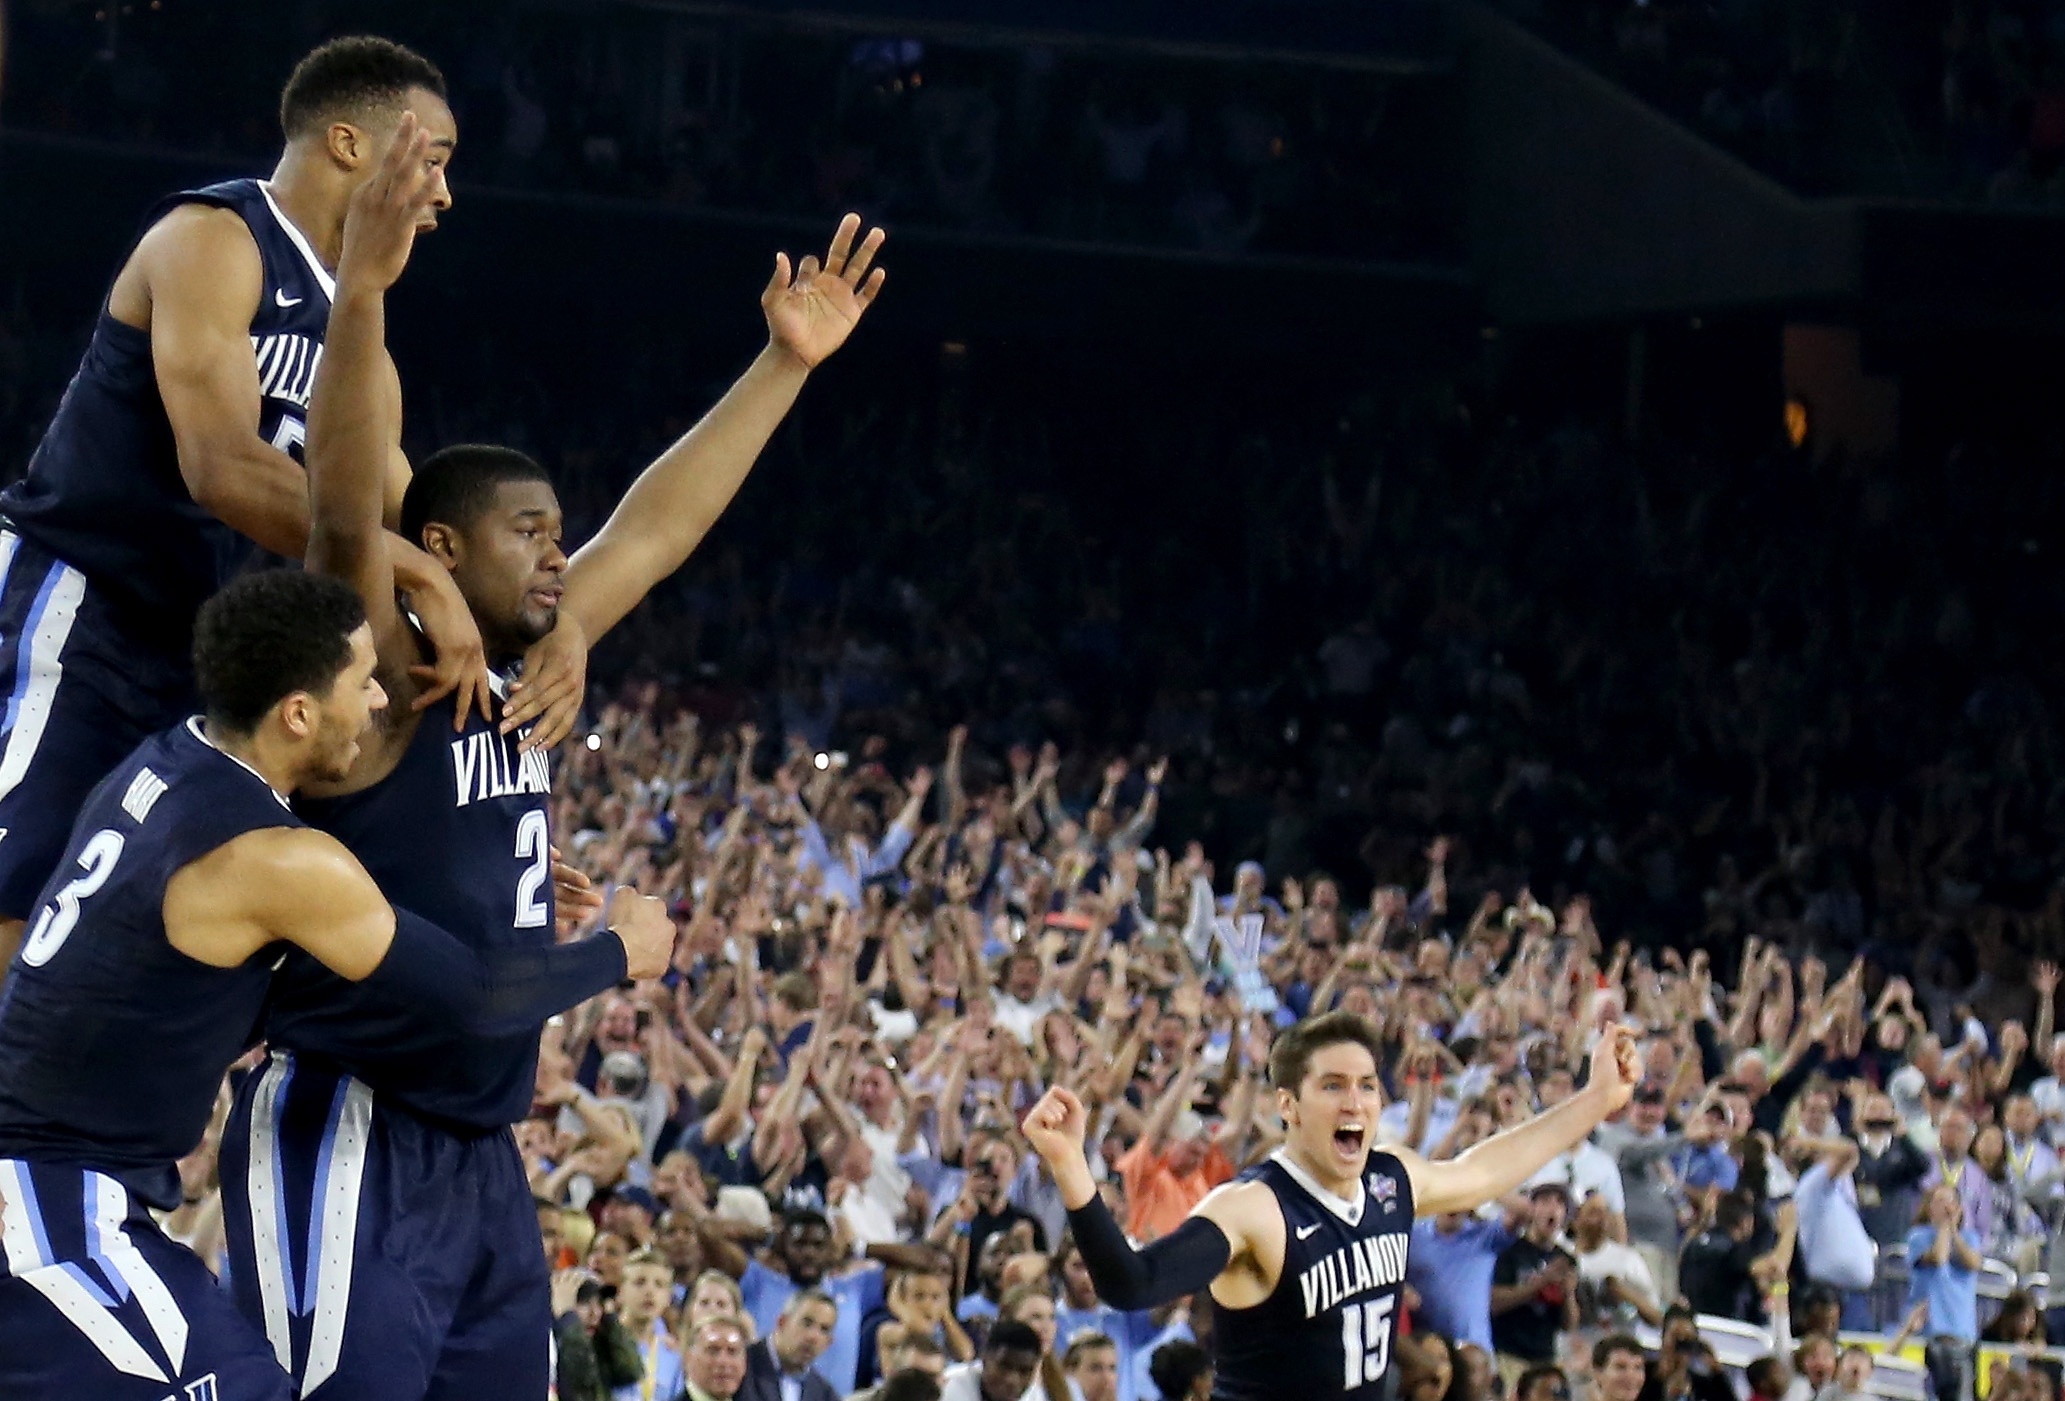 Video: National Title Buzzer-Beater Sets Off the Pavilion